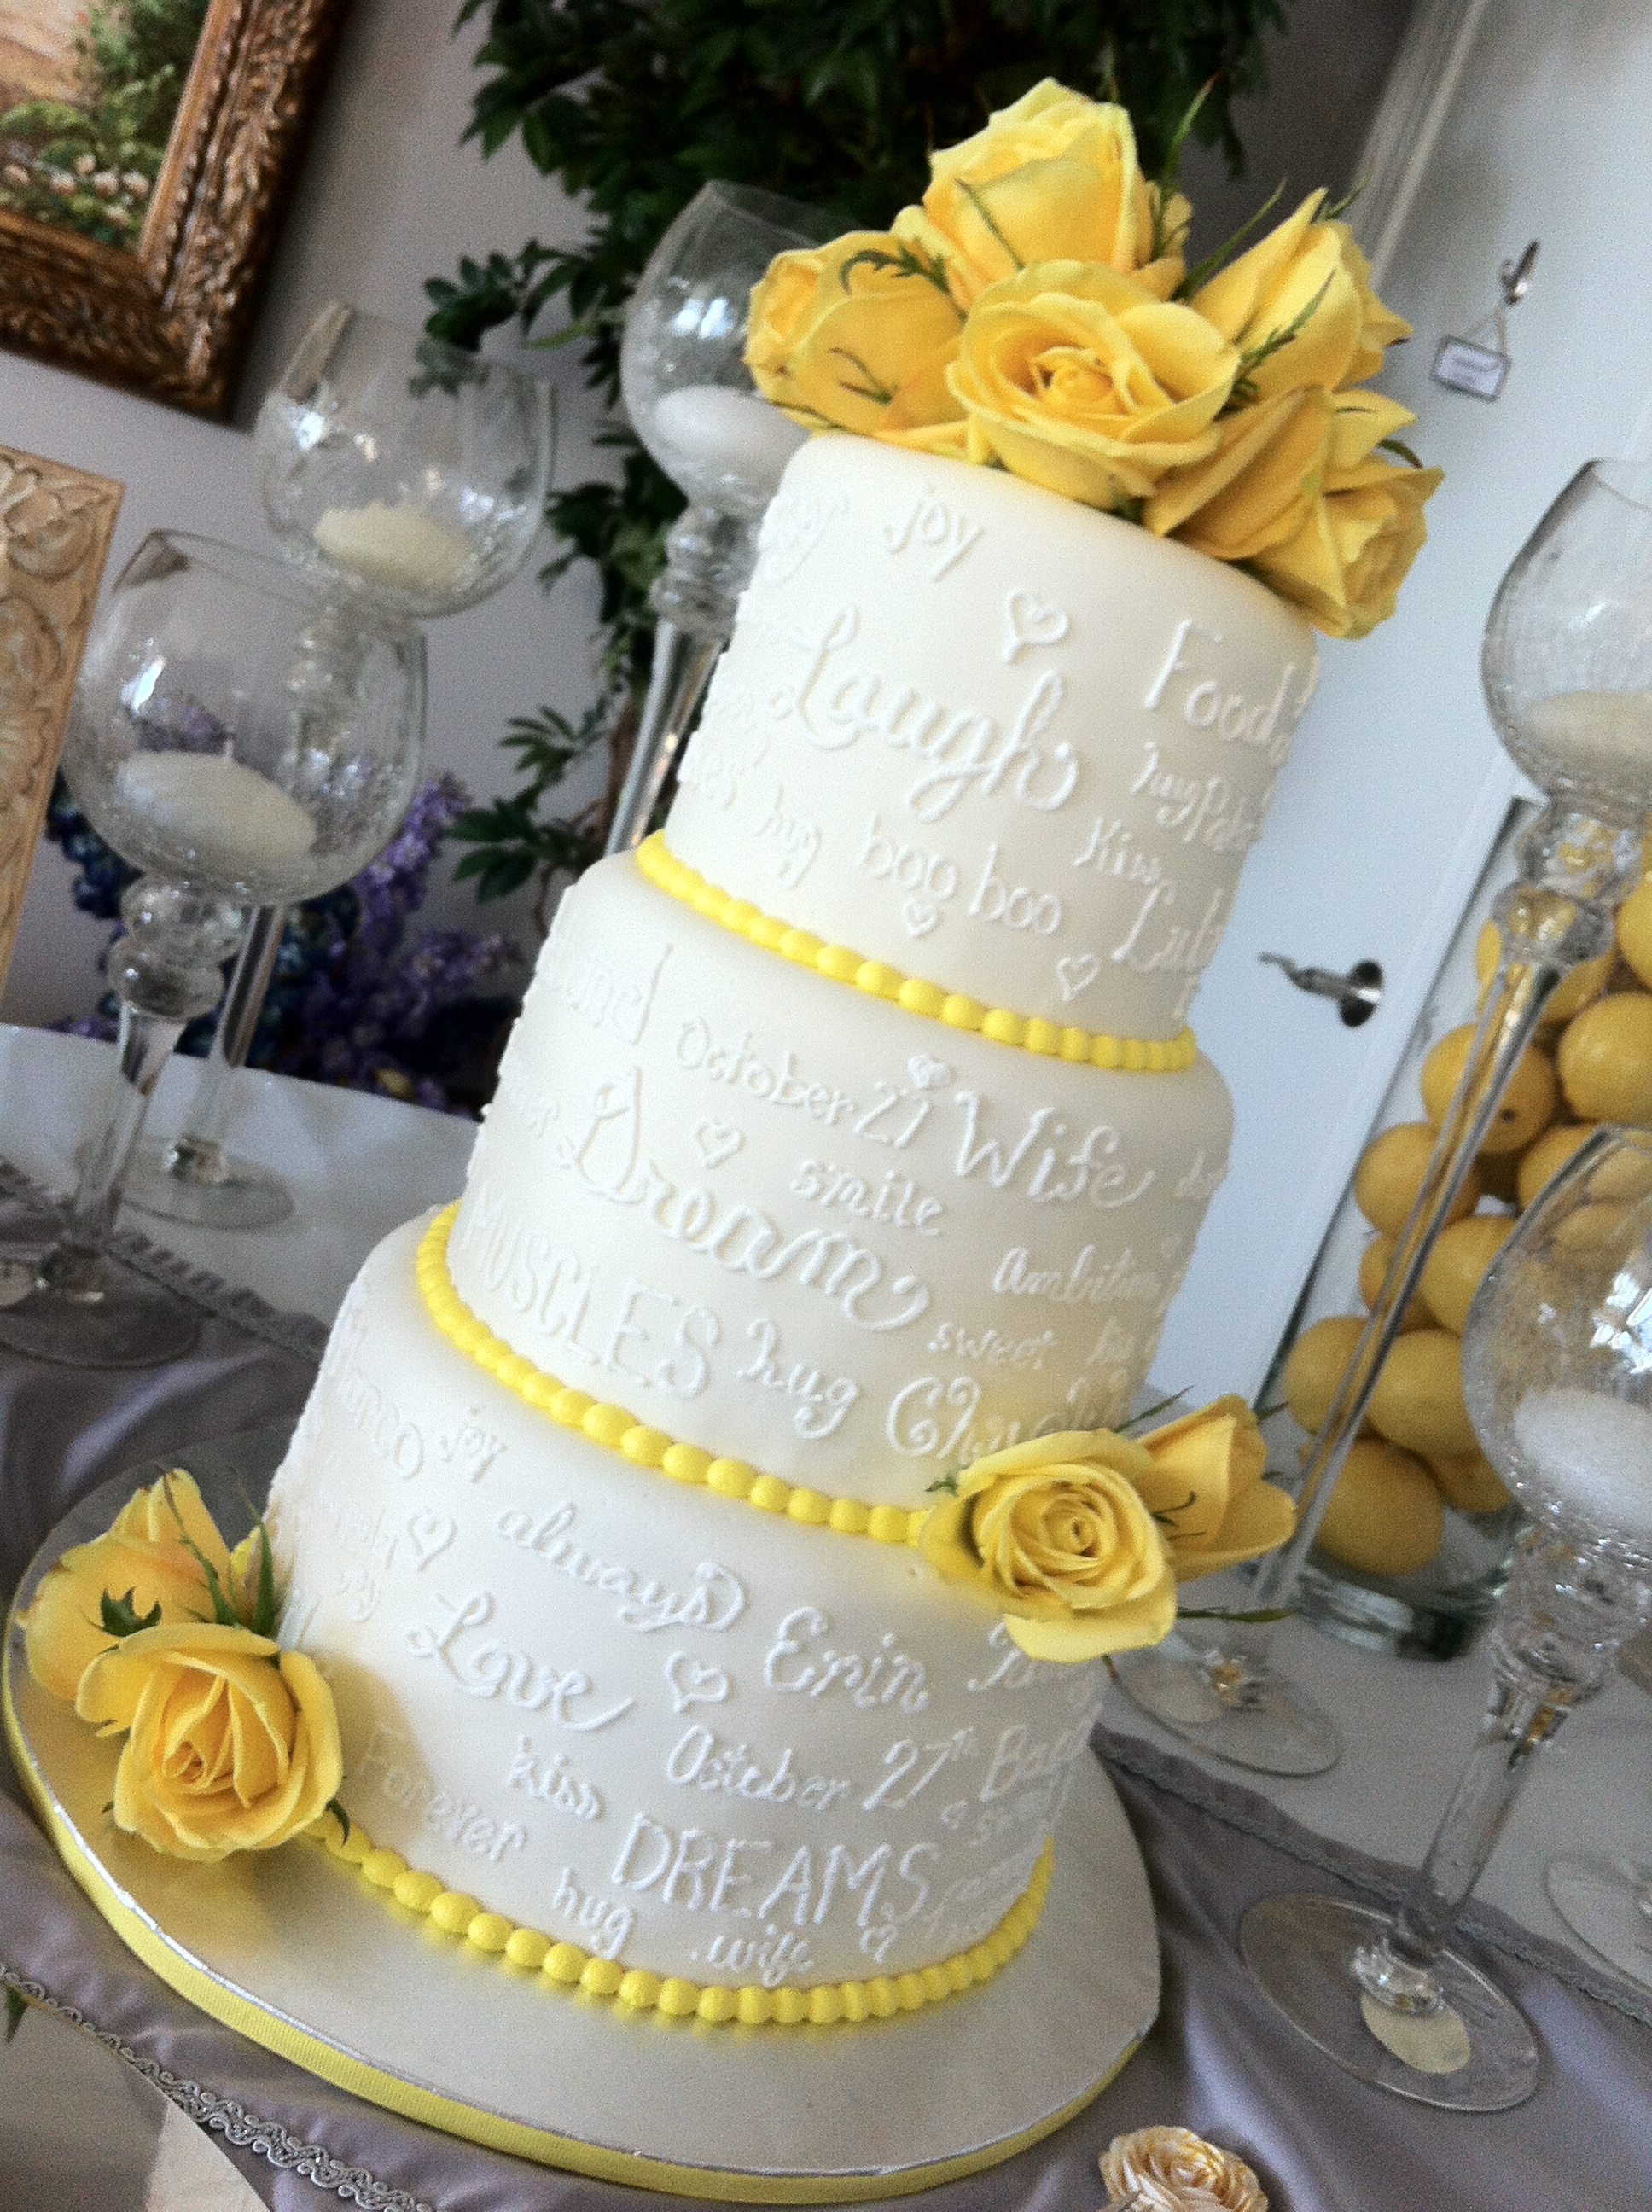 Erin 3 Tier Wedding Cake With Love Notes Amp Yellow